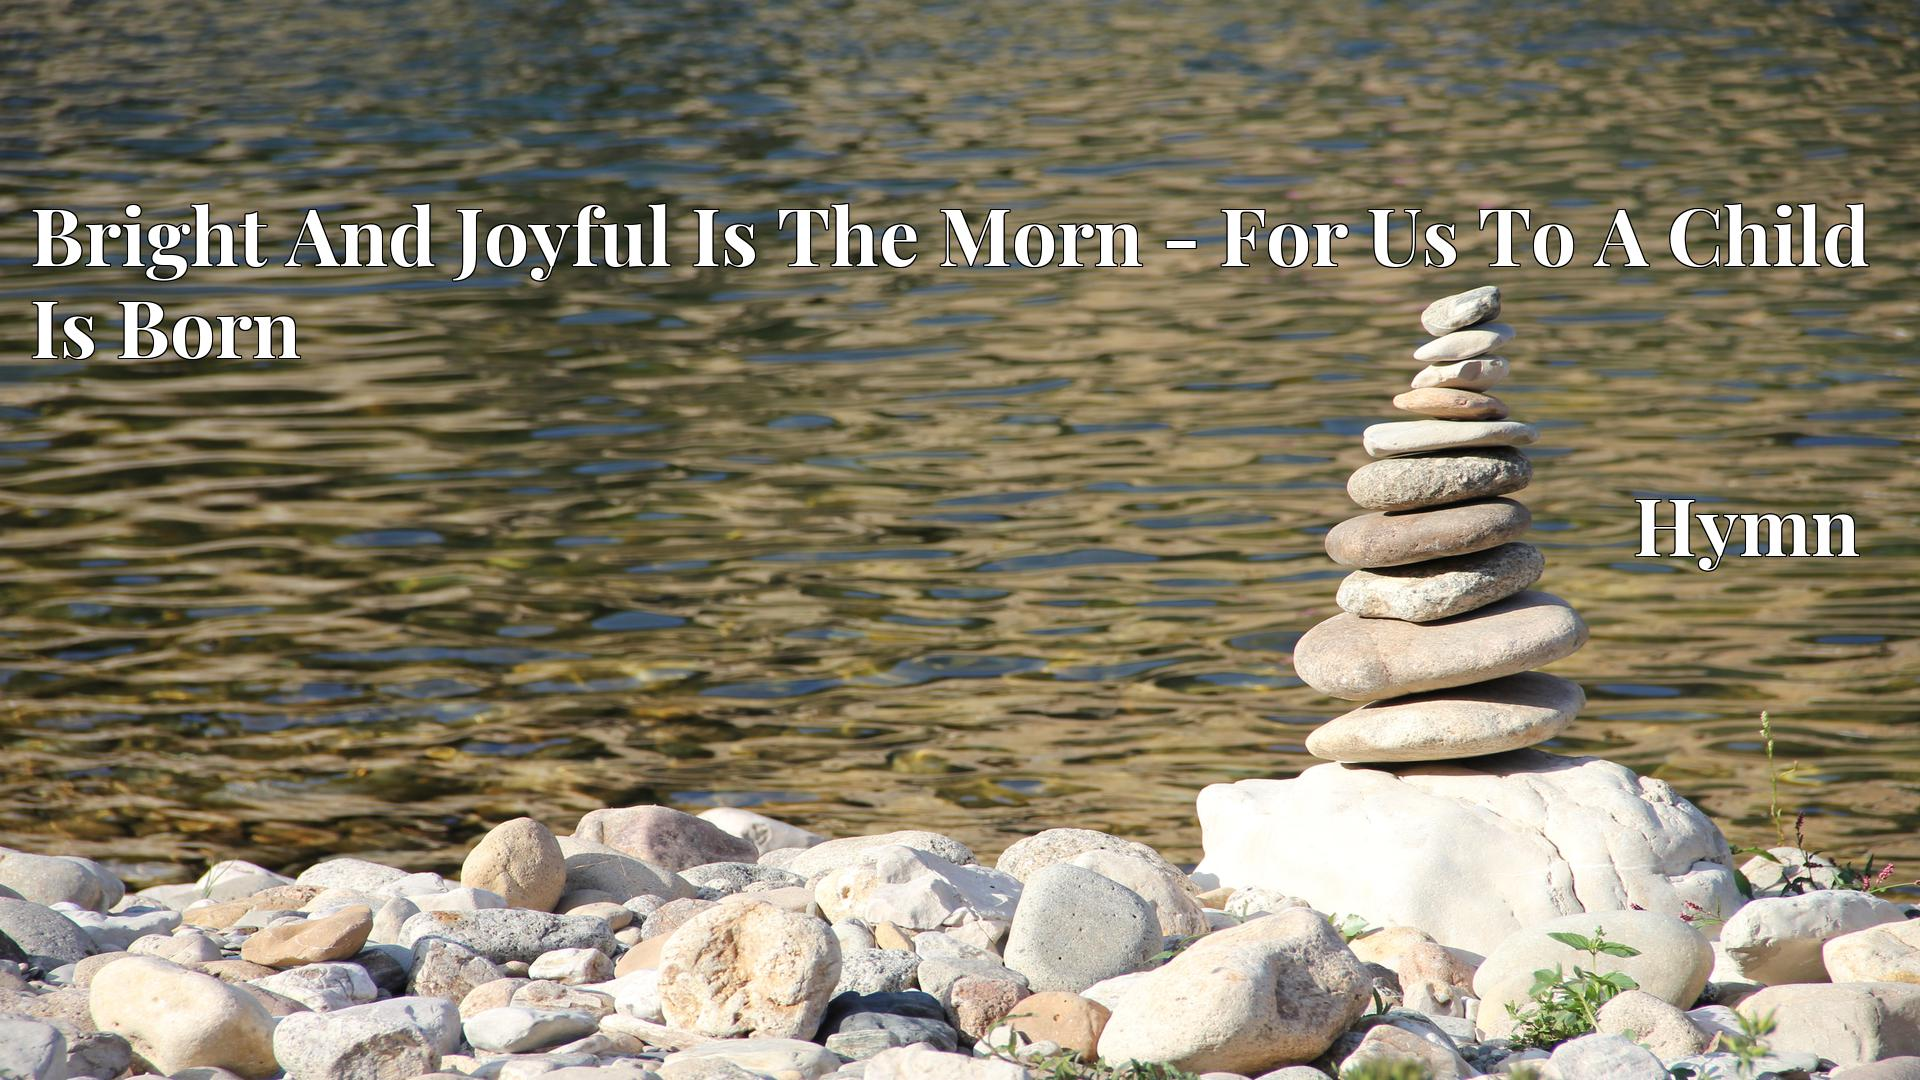 Bright And Joyful Is The Morn - For Us To A Child Is Born Hymn